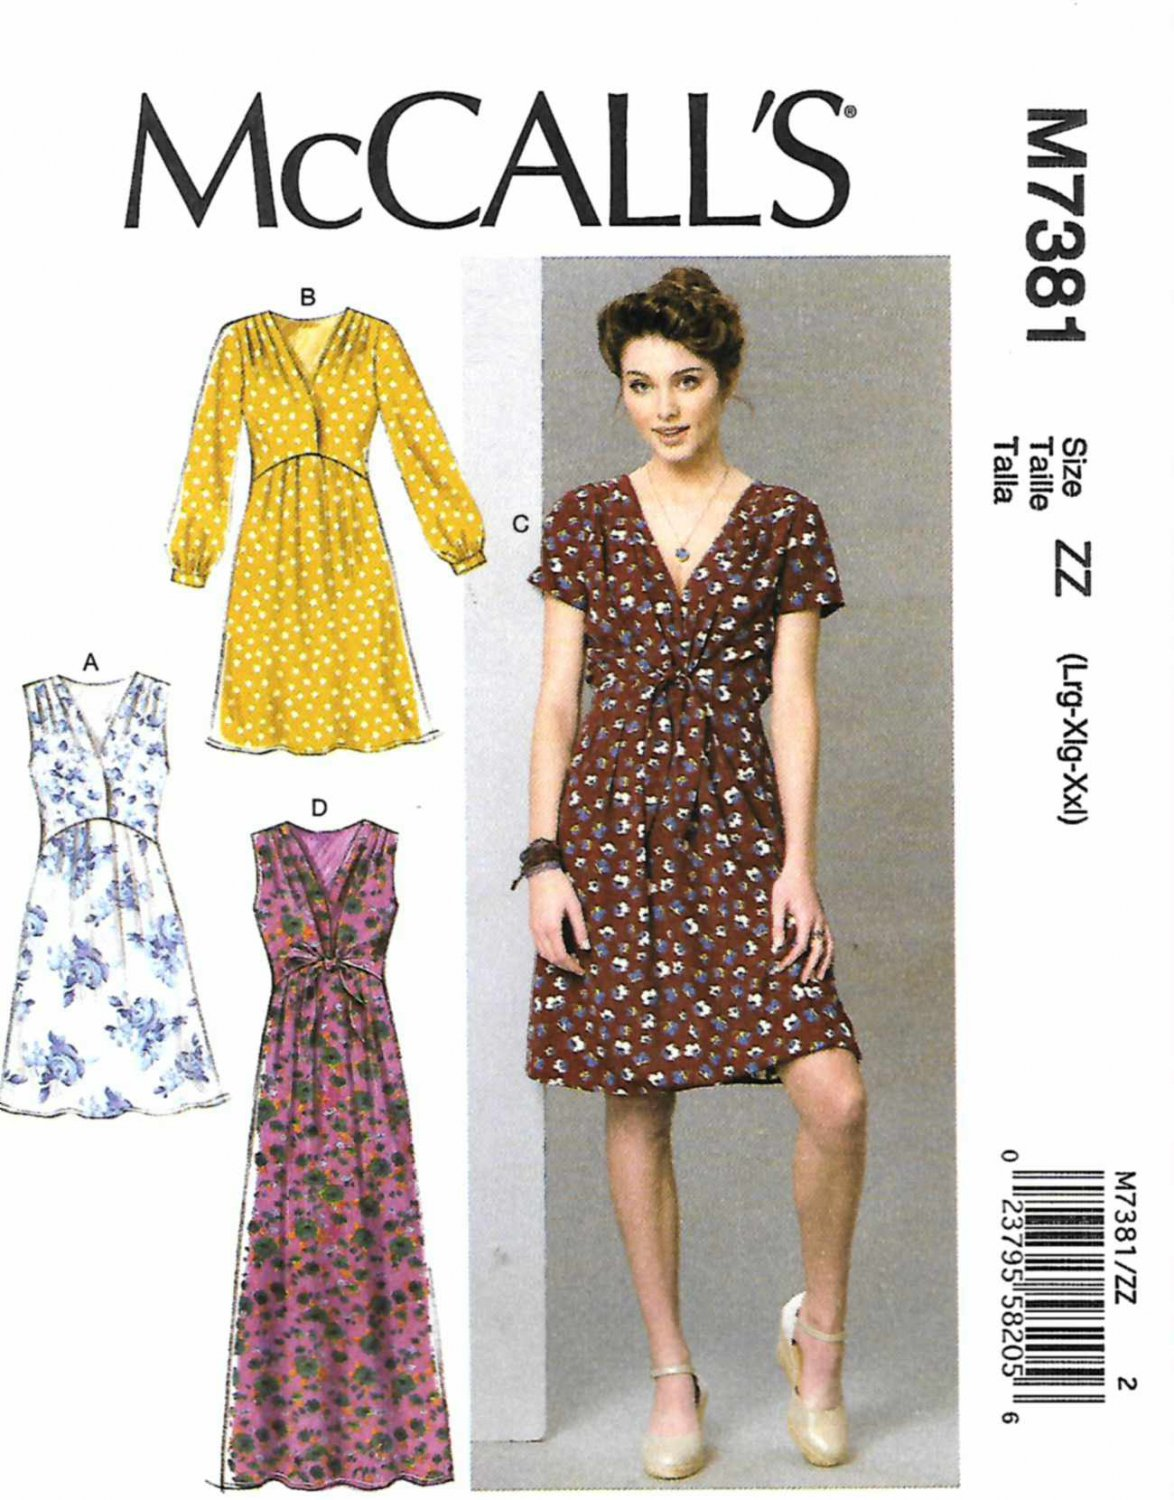 McCall's Sewing Pattern 7381 M7381 Misses Size 16-26 Dresses Pleated Skirt Sleeve Tie Options